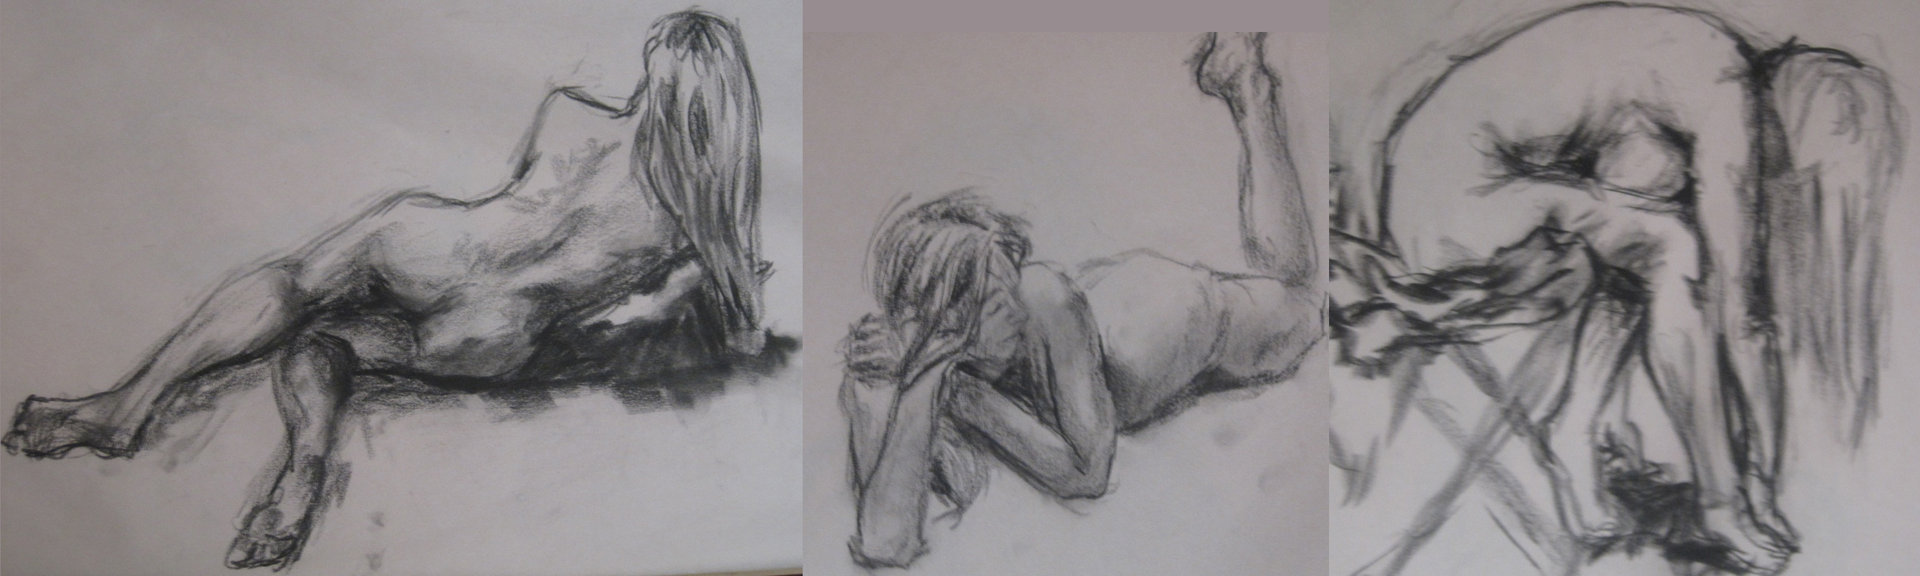 Lifedrawing05